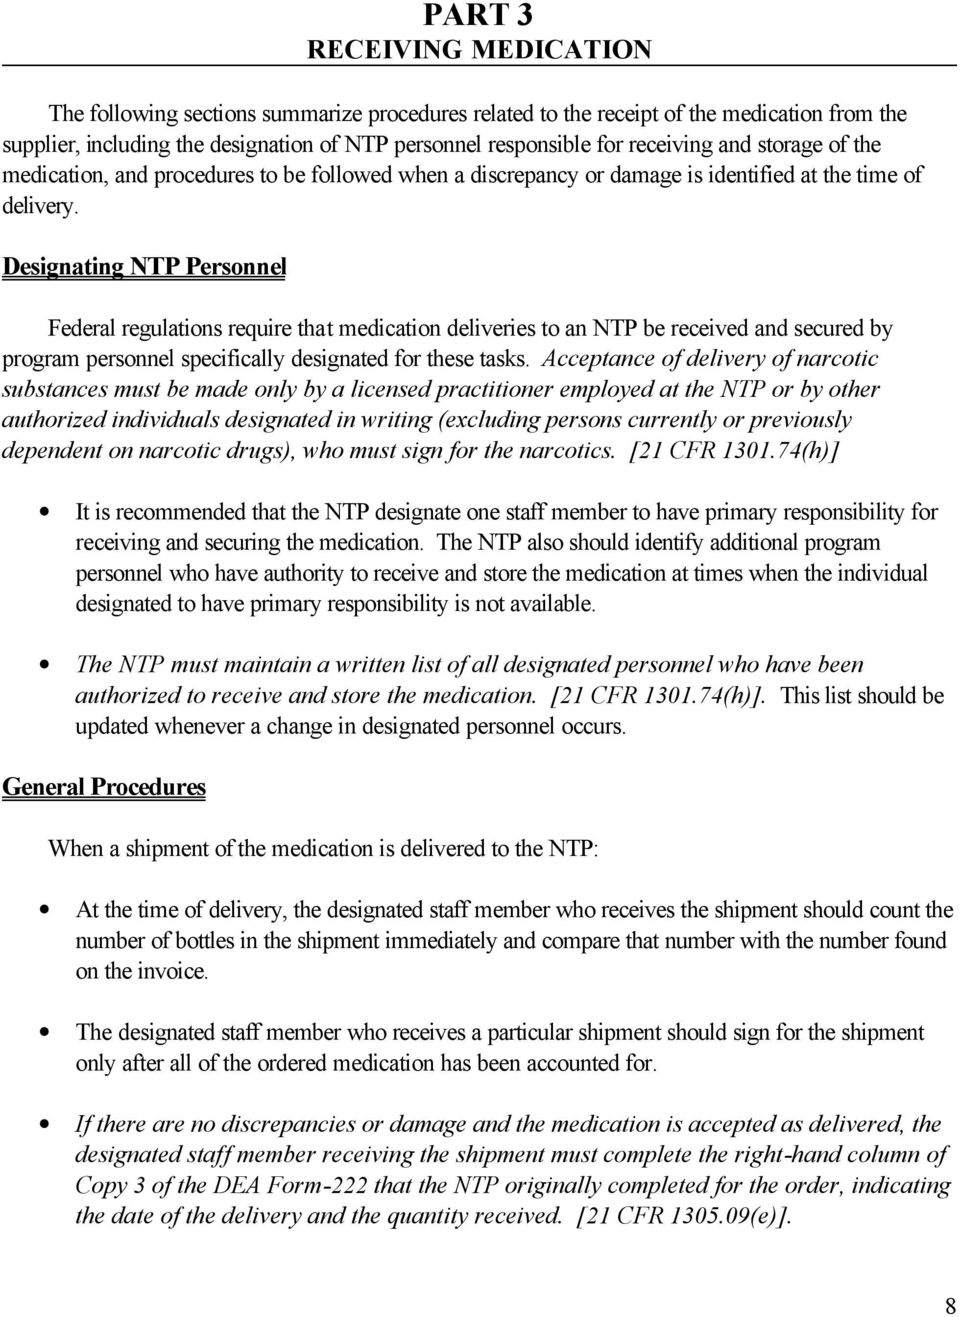 Designating NTP Personnel Federal regulations require that medication deliveries to an NTP be received and secured by program personnel specifically designated for these tasks.